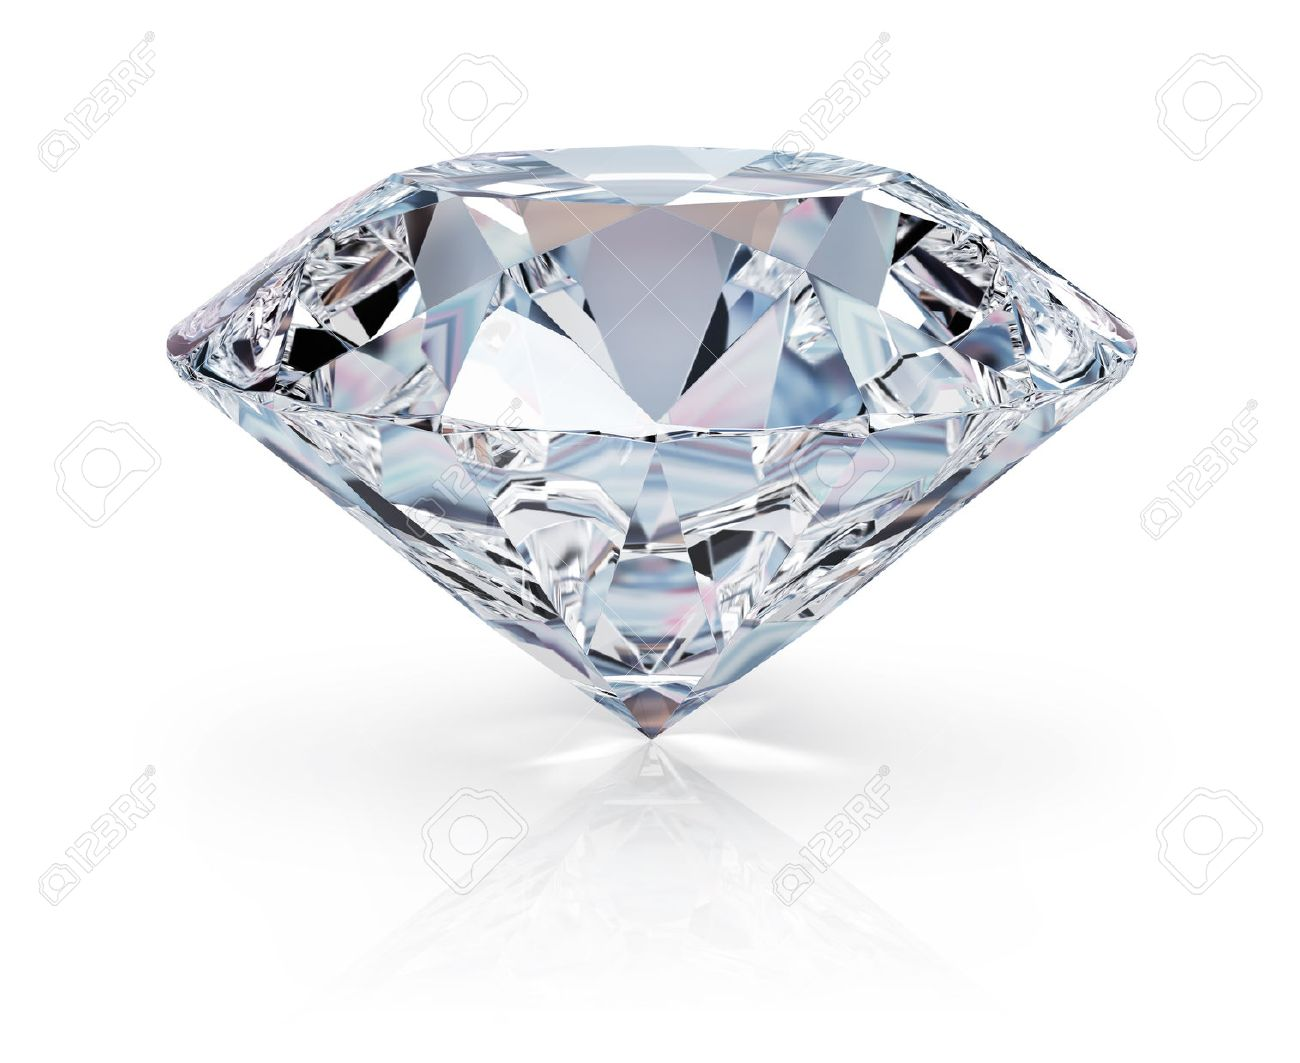 A beautiful sparkling diamond on a light reflective surface. 3d image. Isolated white background. - 43335631